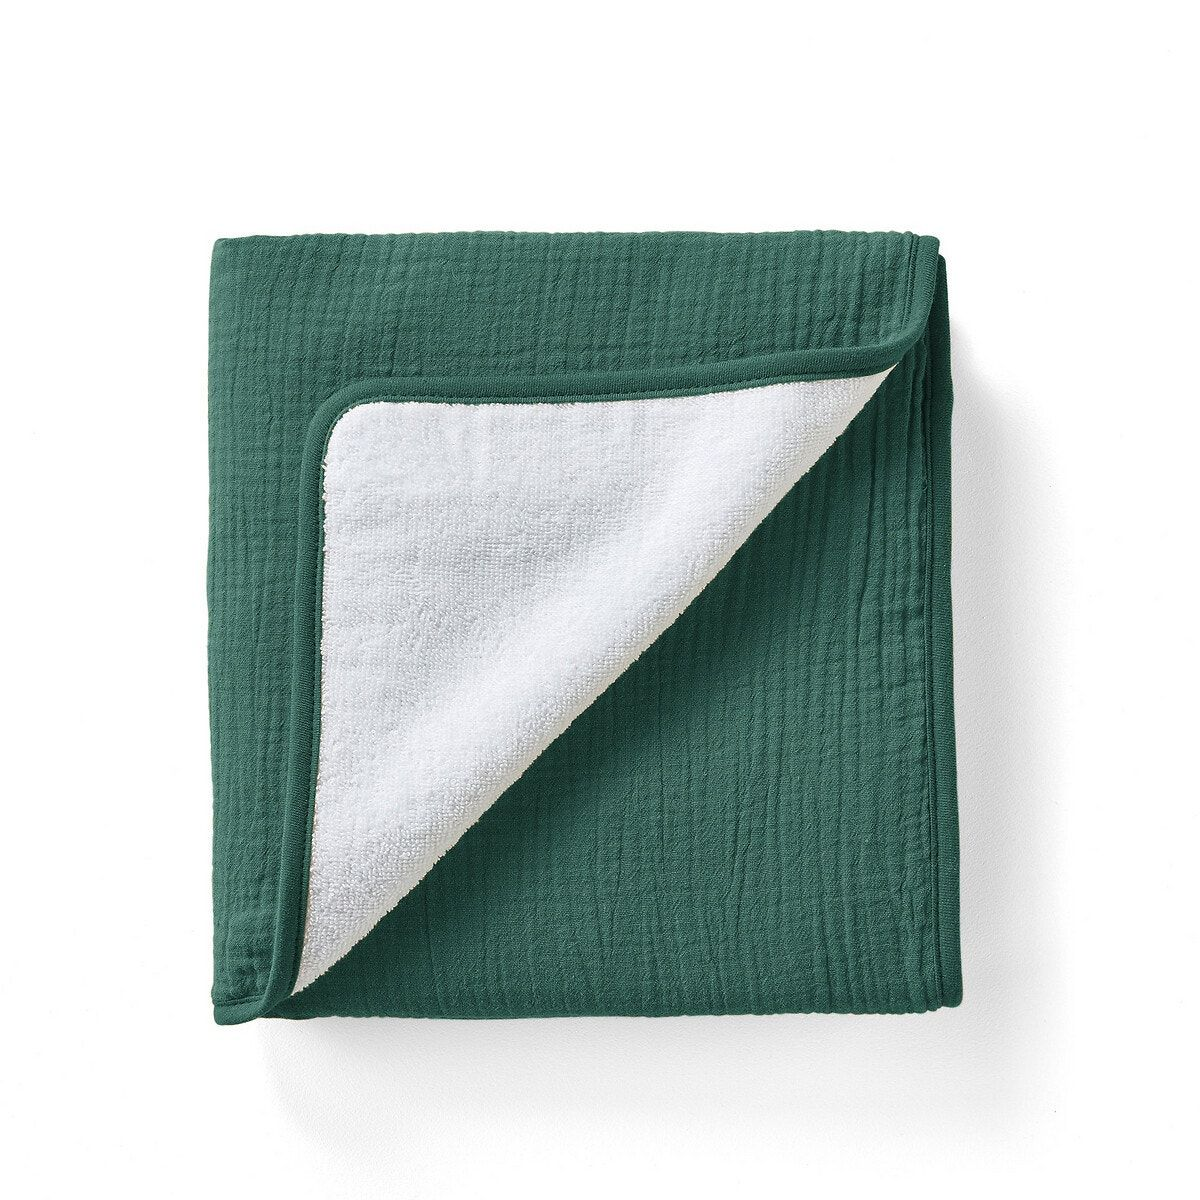 Refresh your bathroom theme with our kumla hand towels. Made with absorbent white terry sponge on one side and pure cotton muslin on the other, they're available in a range of trendy colours for easy coordination.product details:• 1 side white pure cotton terry, 380 g/m2• 1 side pure cotton muslin• machine wash at 40°.size:• 50 x 90 cm.shop the full kumla range online.additional information:• this standard 100 certified product by oeko-tex® - certificate no. Cq 1102/4 ifth - follows a certified